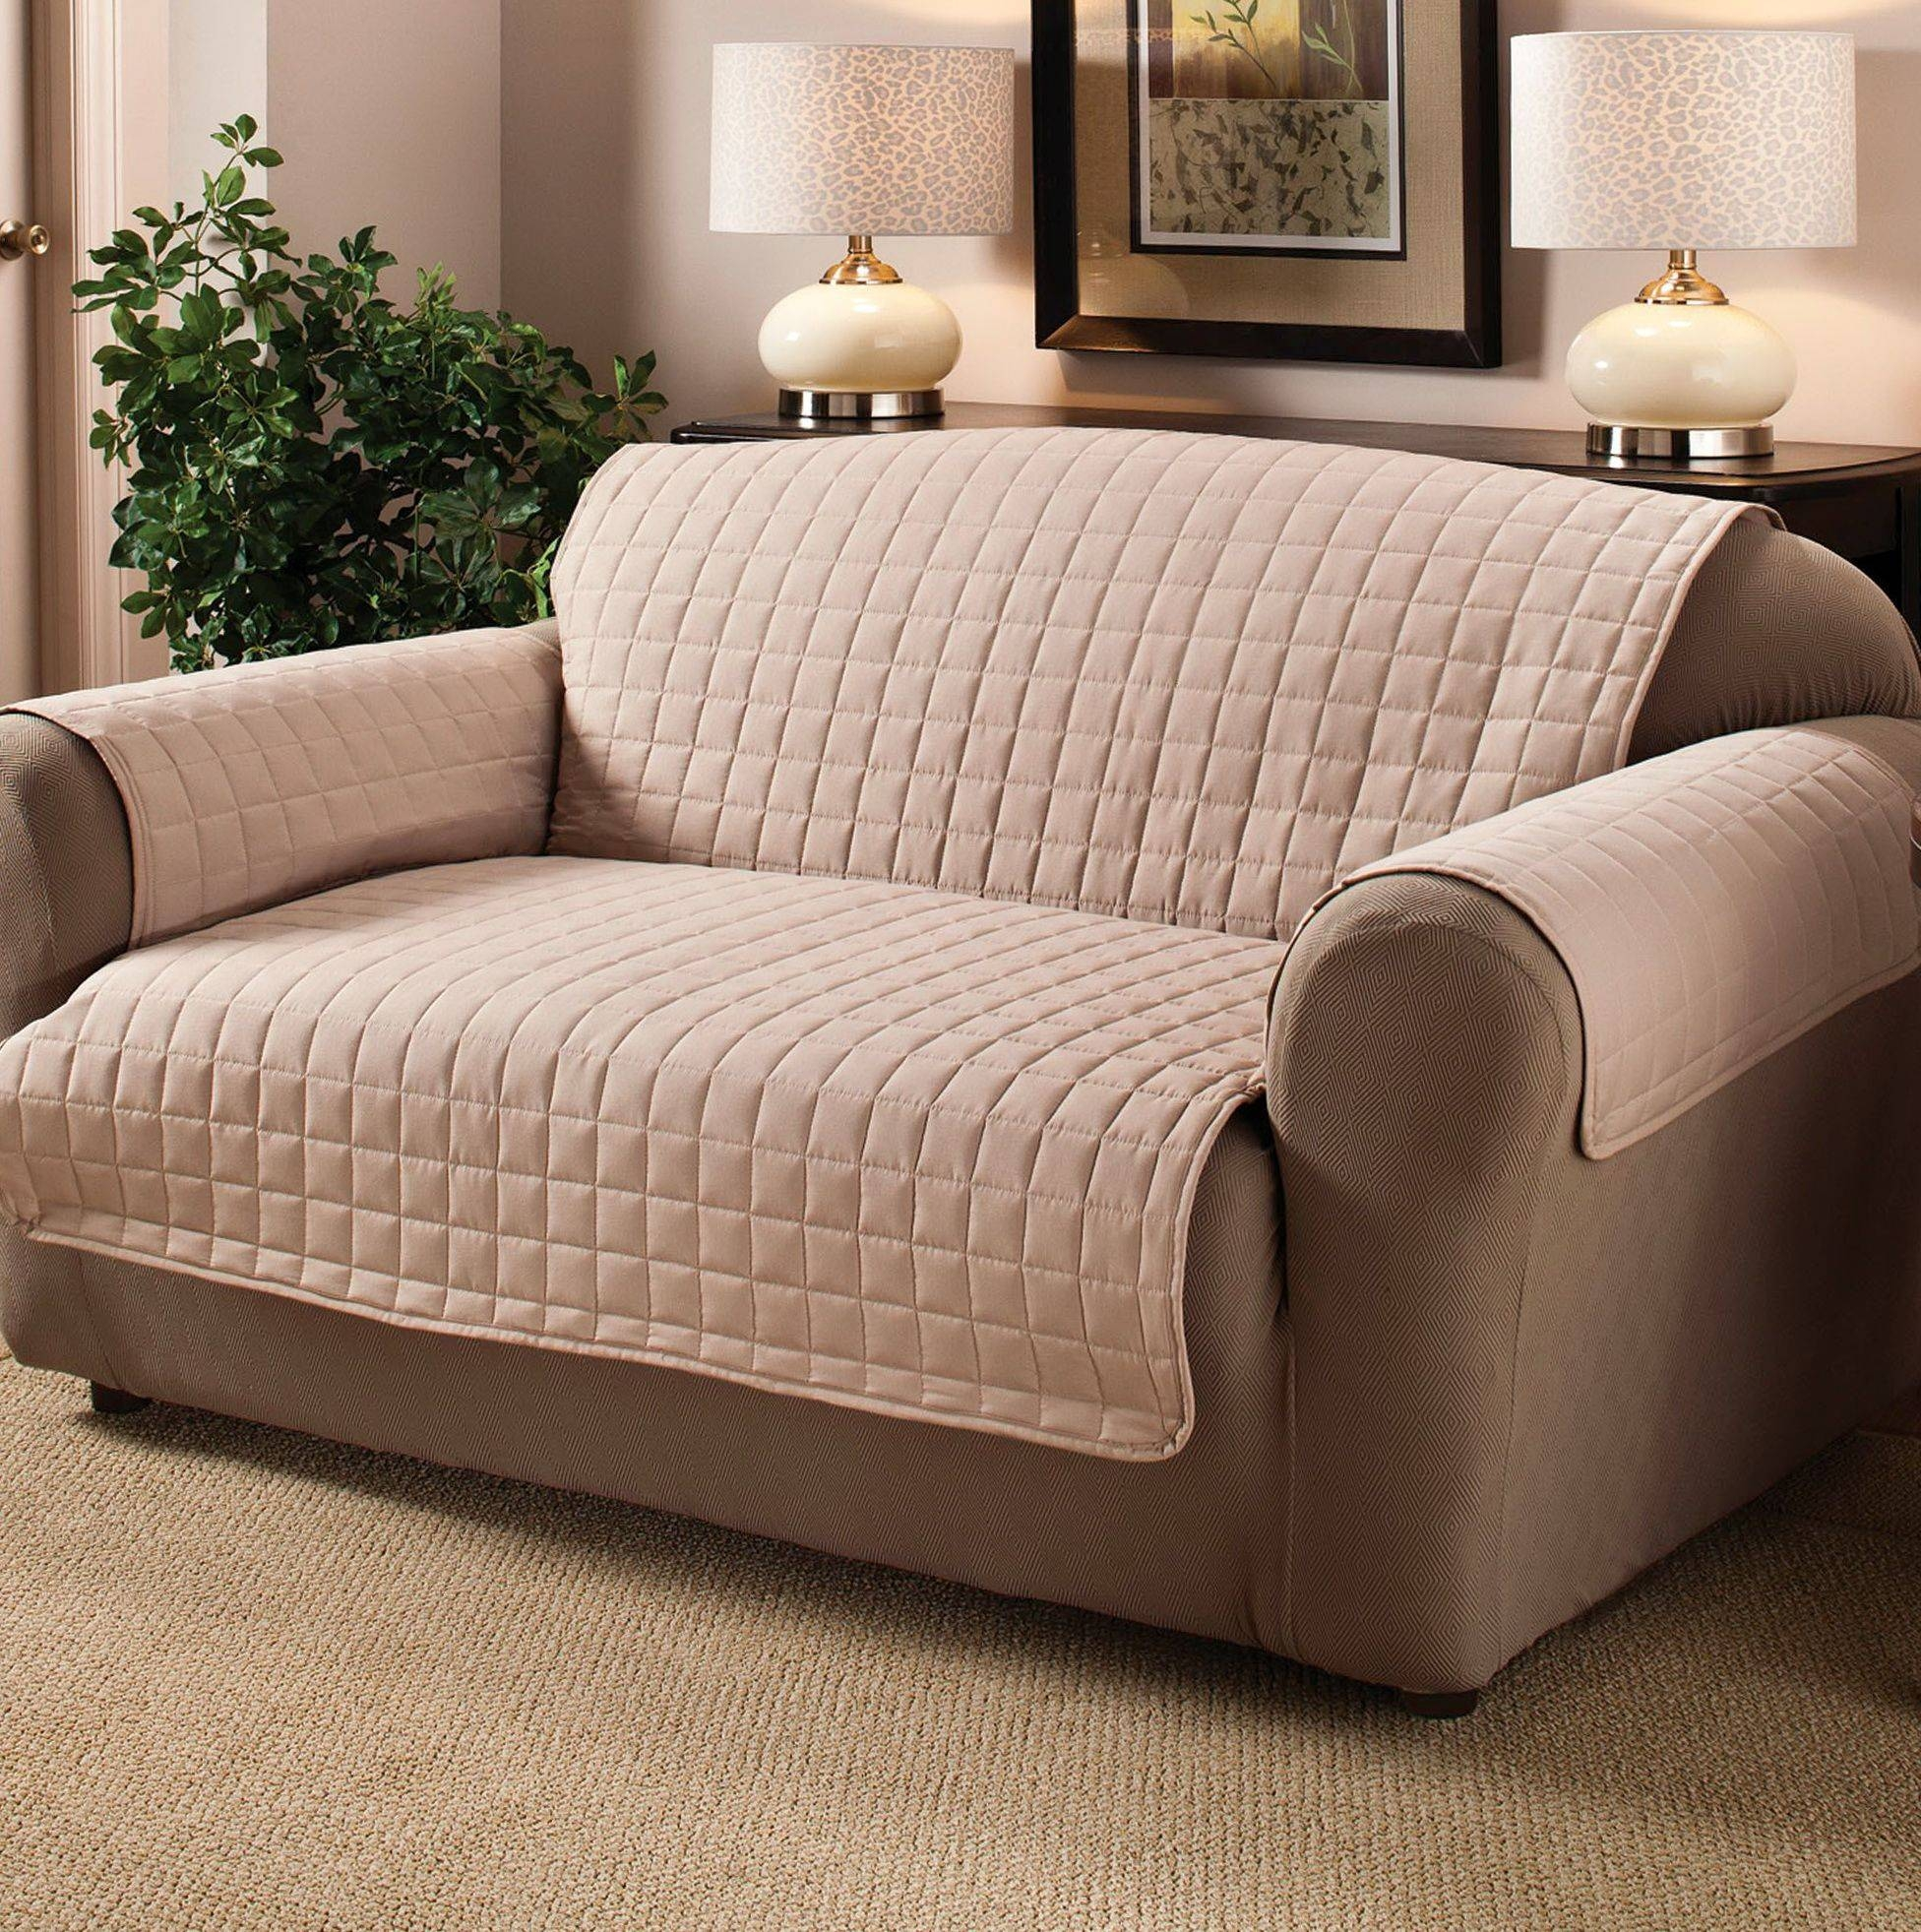 Elegant Sofa Slipcovers - Home And Interior with regard to Suede Slipcovers for Sofas (Image 3 of 15)